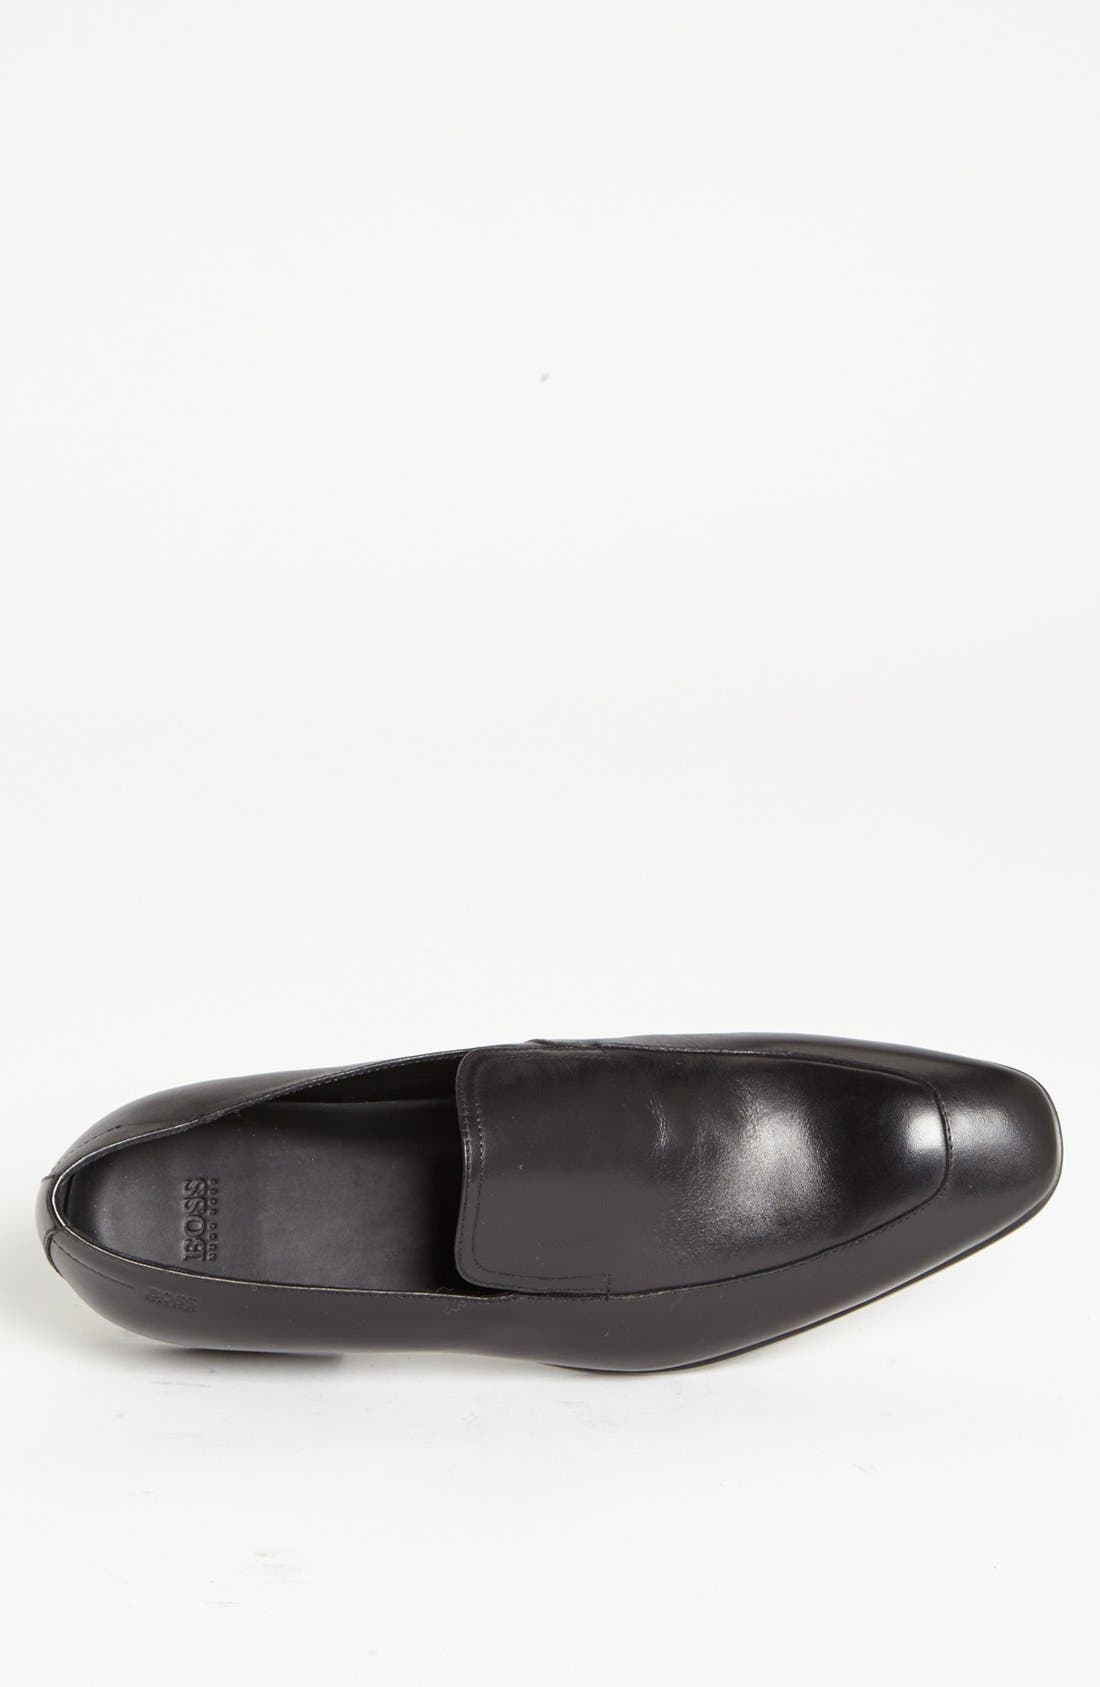 Alternate Image 3  - BOSS HUGO BOSS 'Varmons' Apron Toe Loafer (Men)